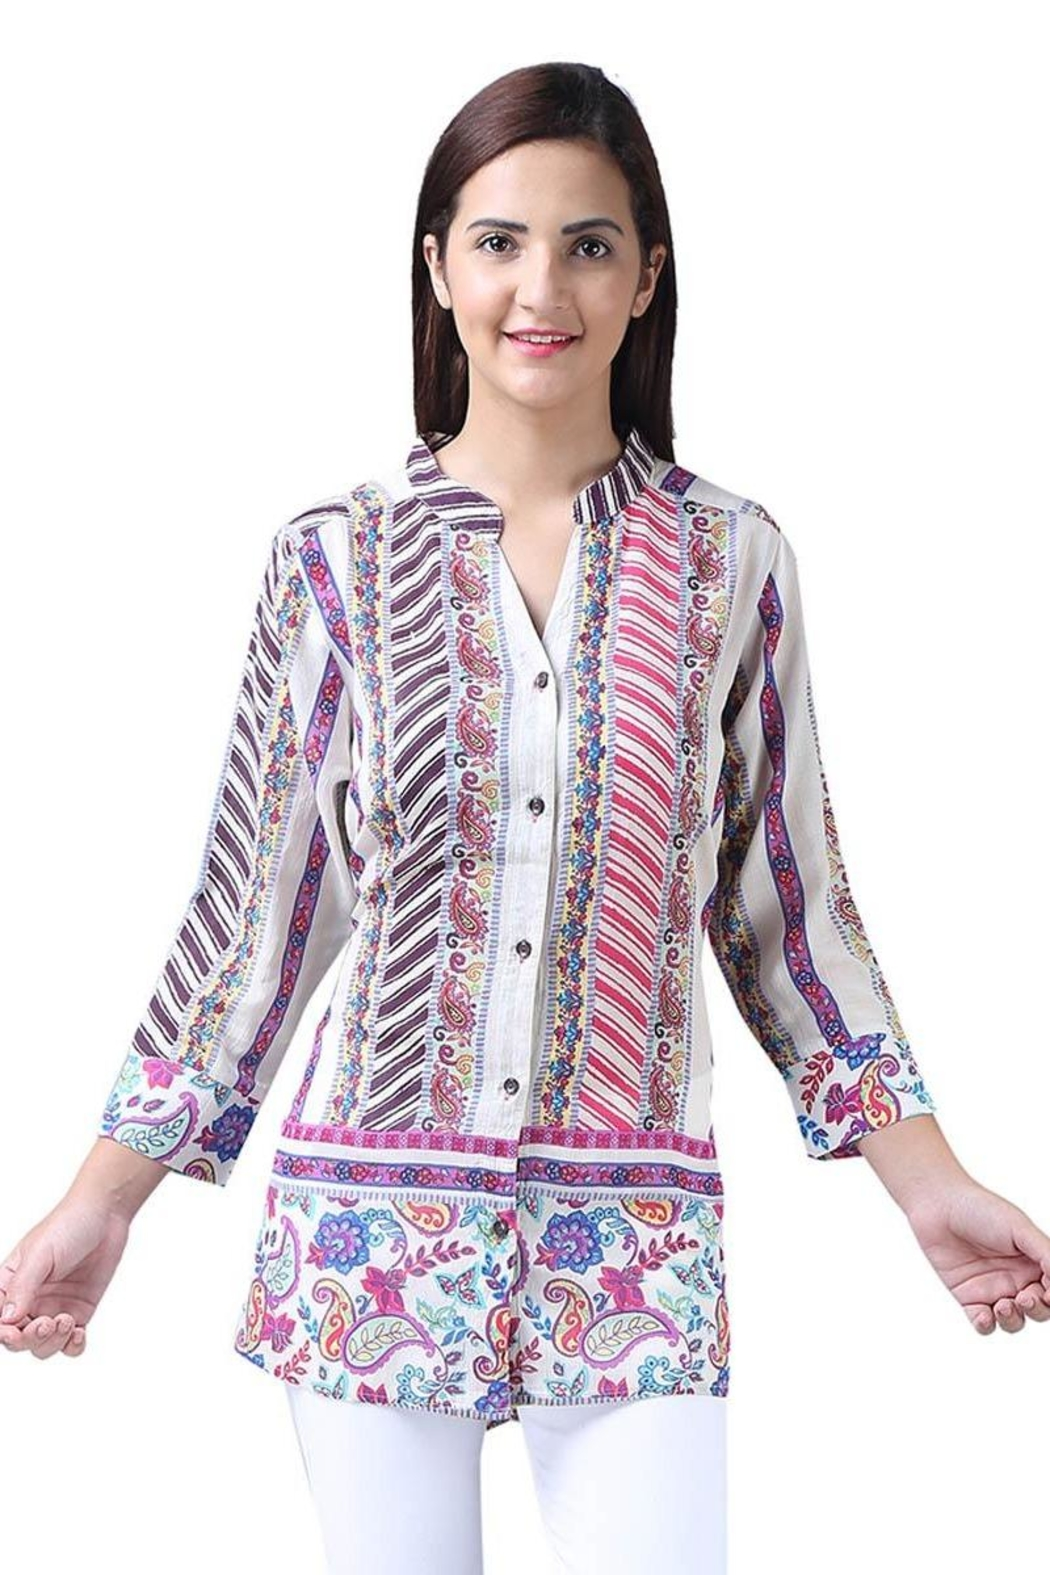 c4605975603 Parsley & Sage Colorful Button-Up Tunic from Cambria by New Moon ...